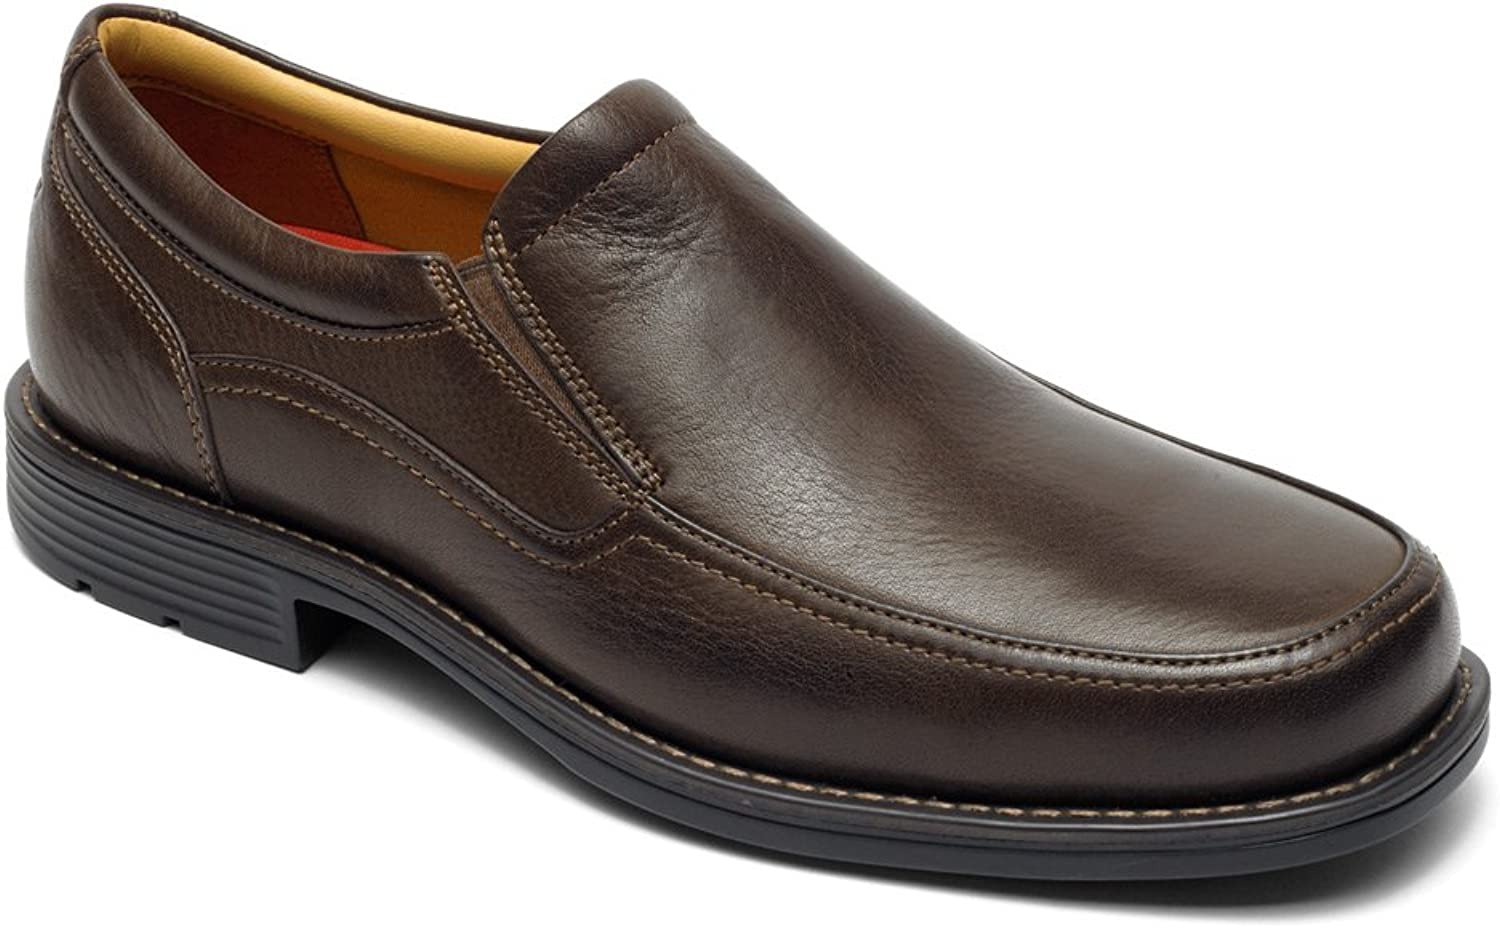 Rockport Mens Liberty Square Twingore Slip On Loafer shoes, Brown, US 12